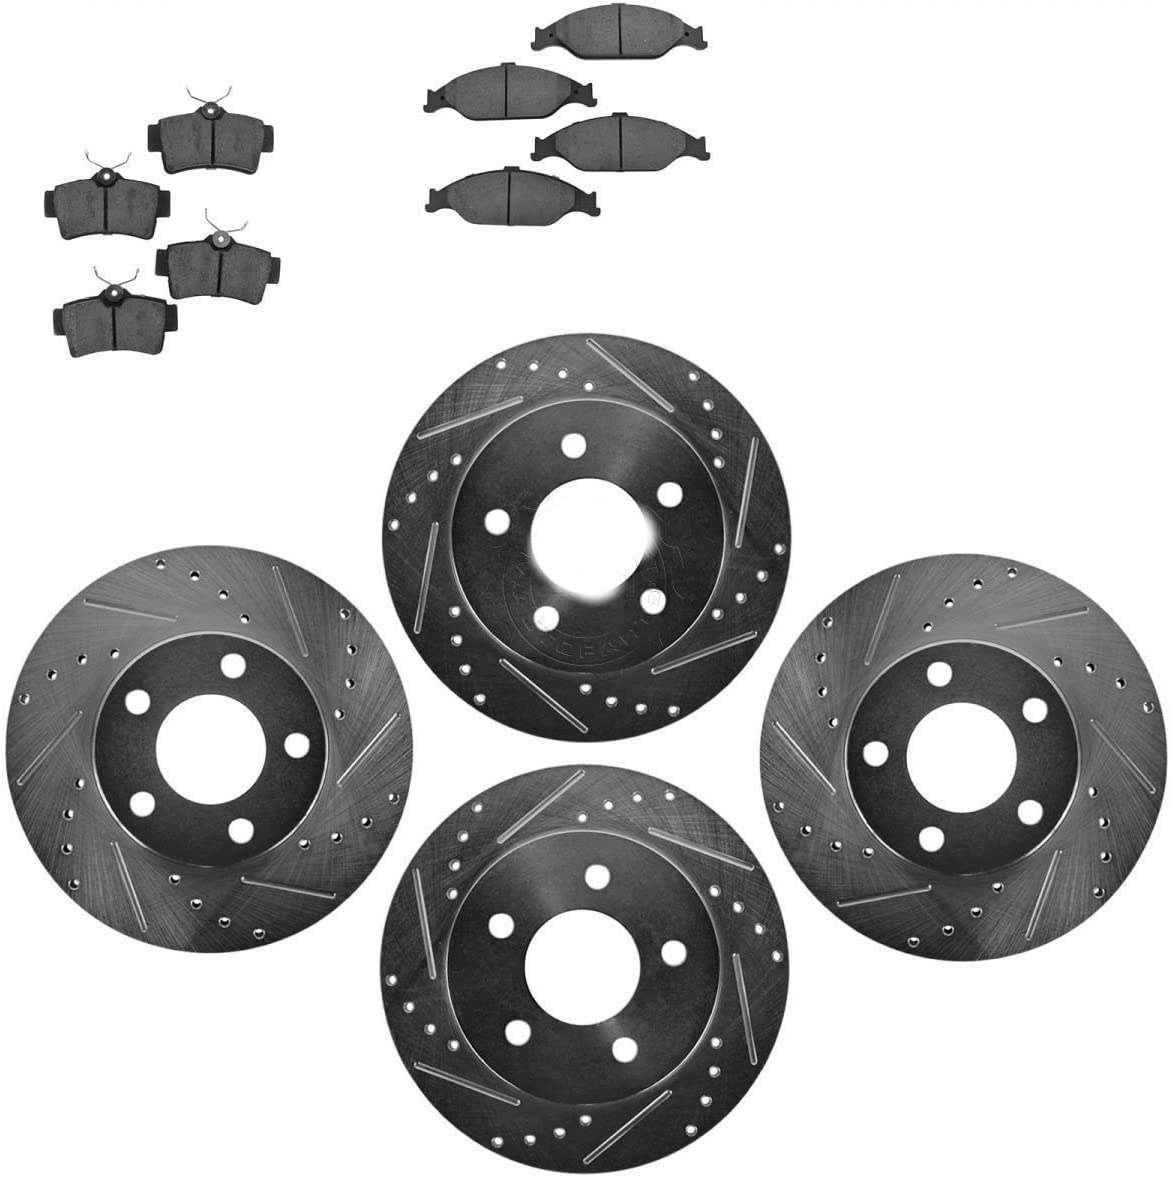 Nakamoto Posi Ceramic Disc Brake Pads /& E-Coated Rotor Set Rear for Lexus Toyota